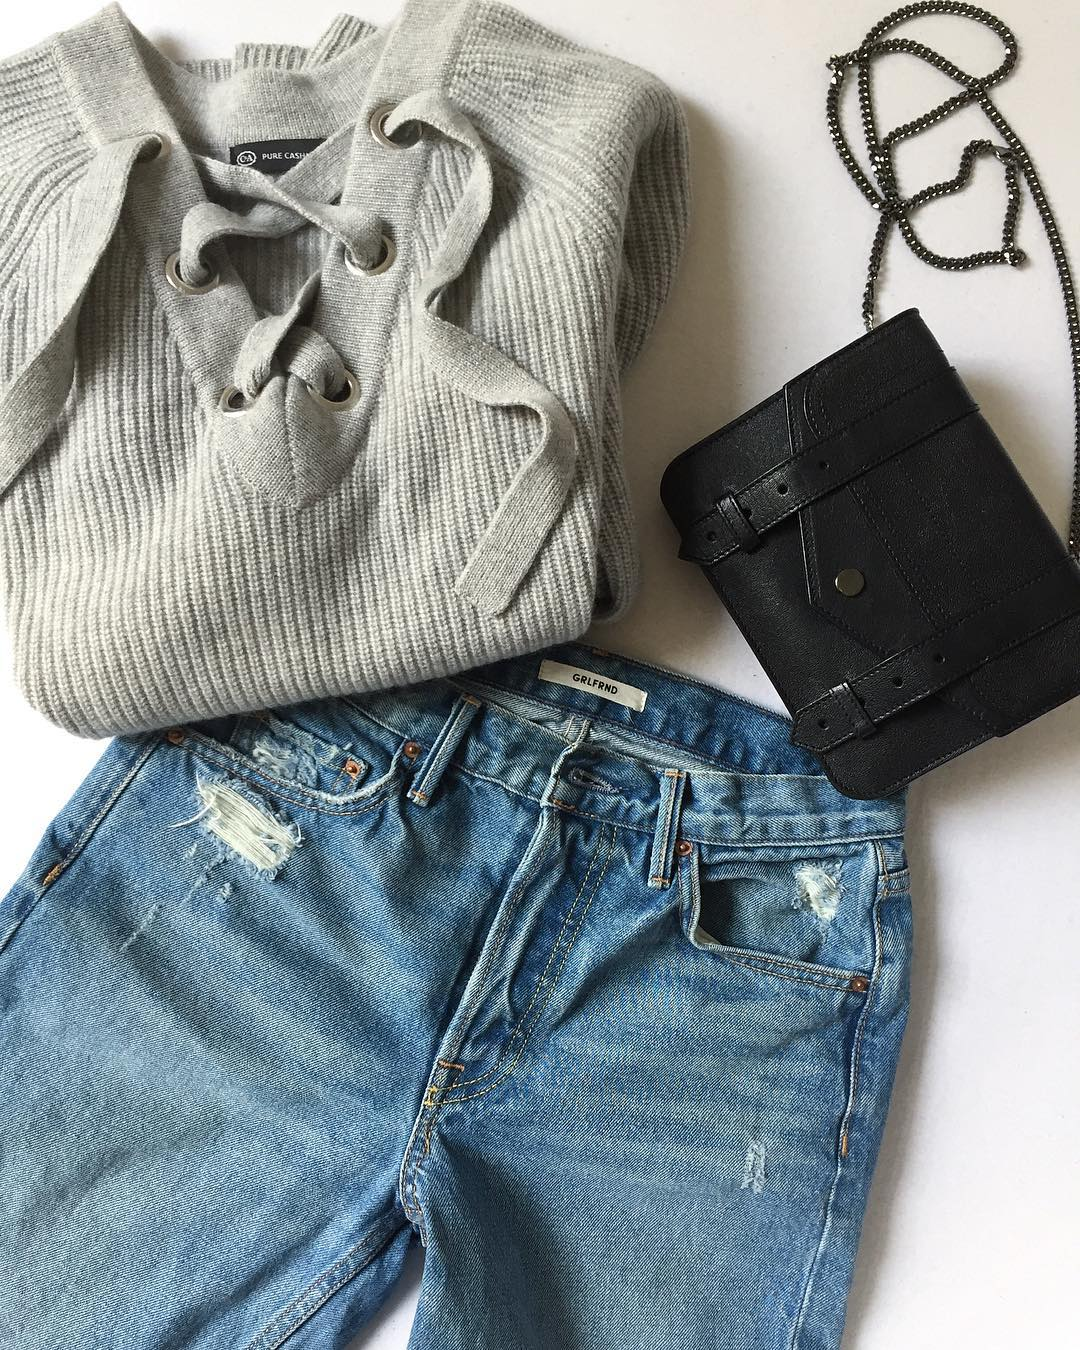 Two new favourites and a classic grlfrnddenim cundacashmere proenzaschouler mygrlfrnd